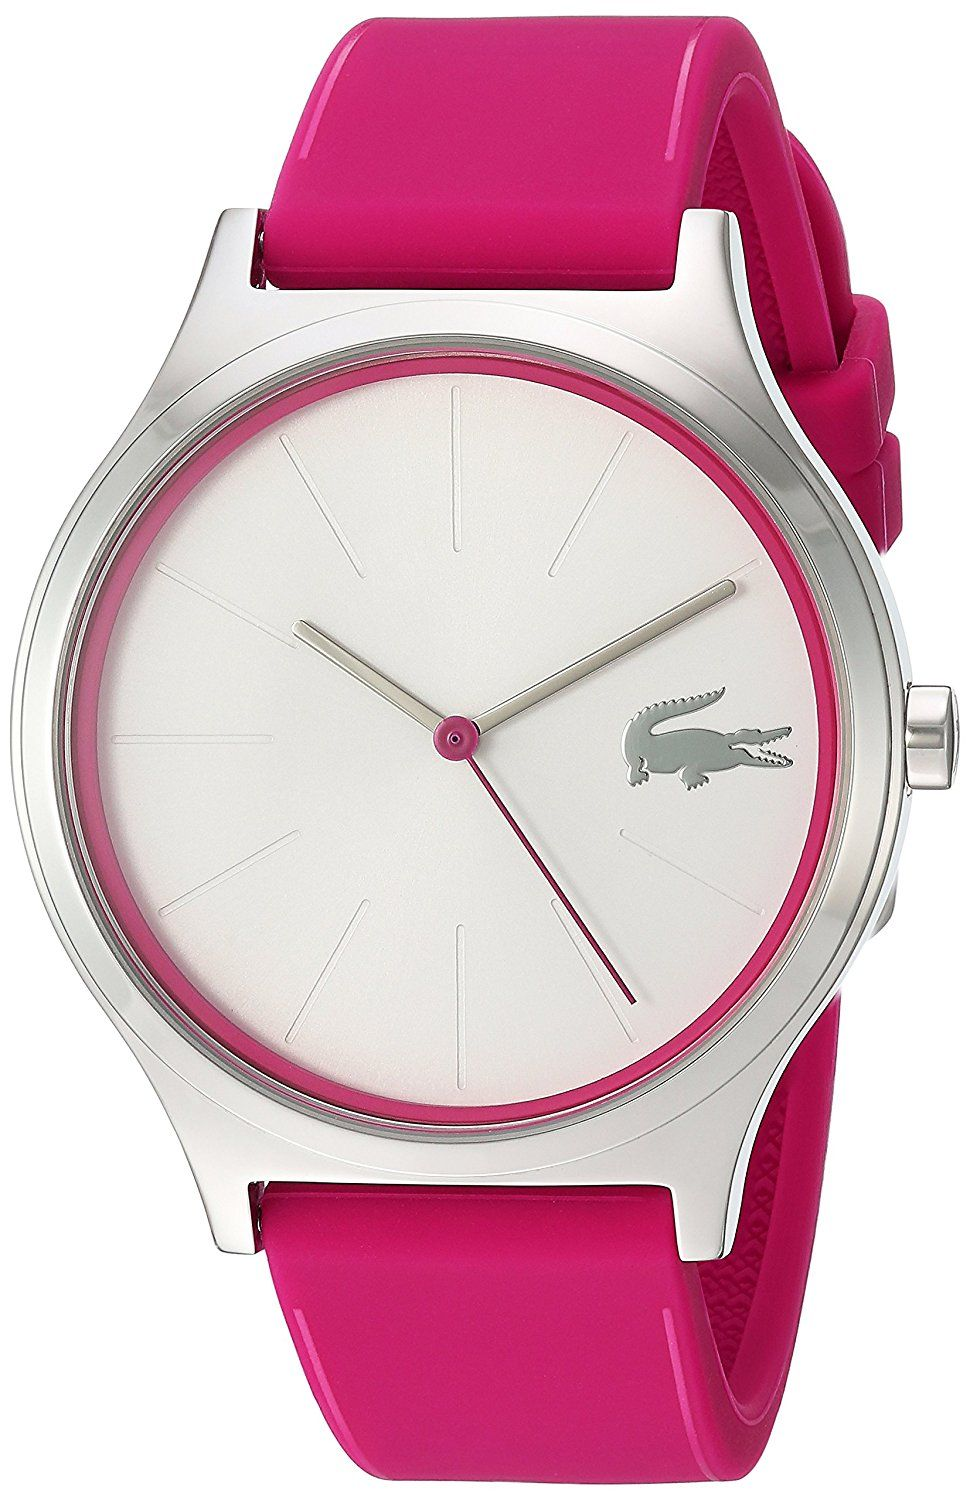 5bb4e6cee01 Lacoste Women s  Nikita  Quartz Stainless Steel and Silicone Casual Watch